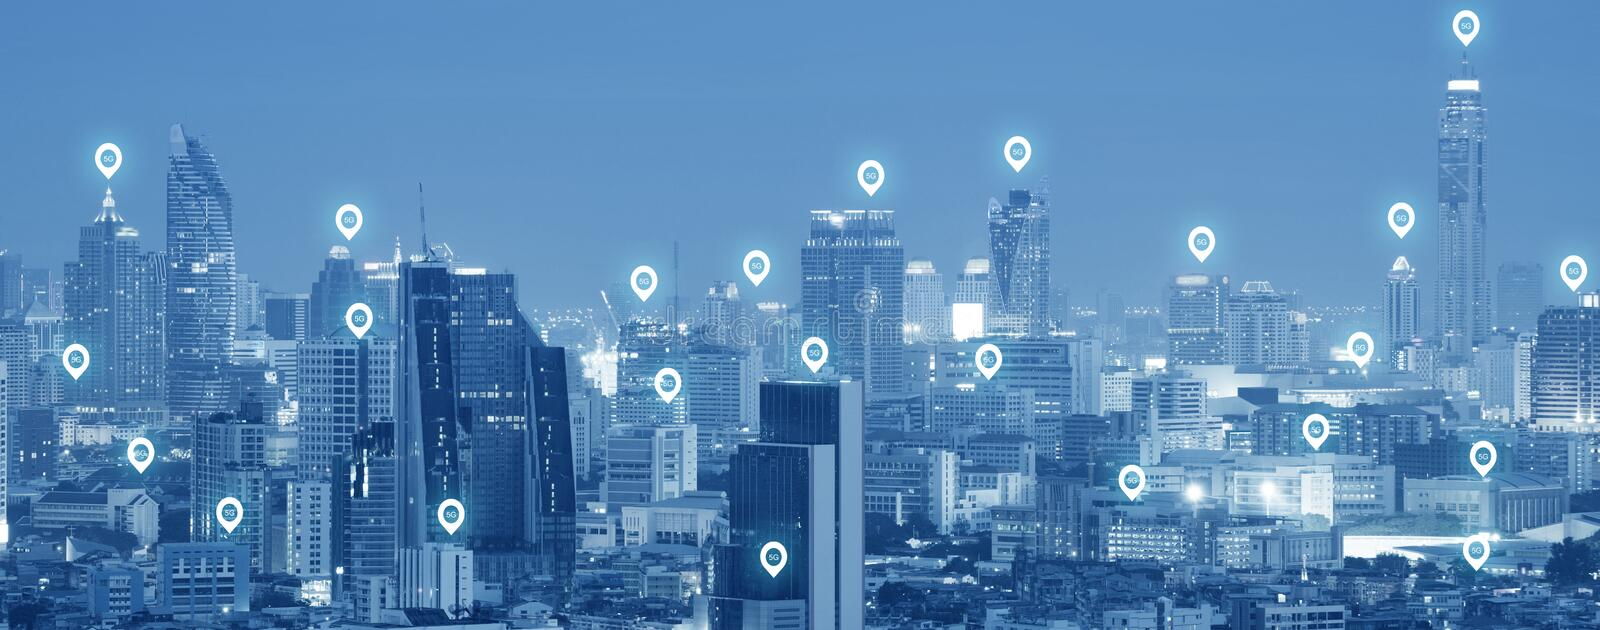 5G pin icon network connection activity in the modern city skyscraper technology royalty free stock images